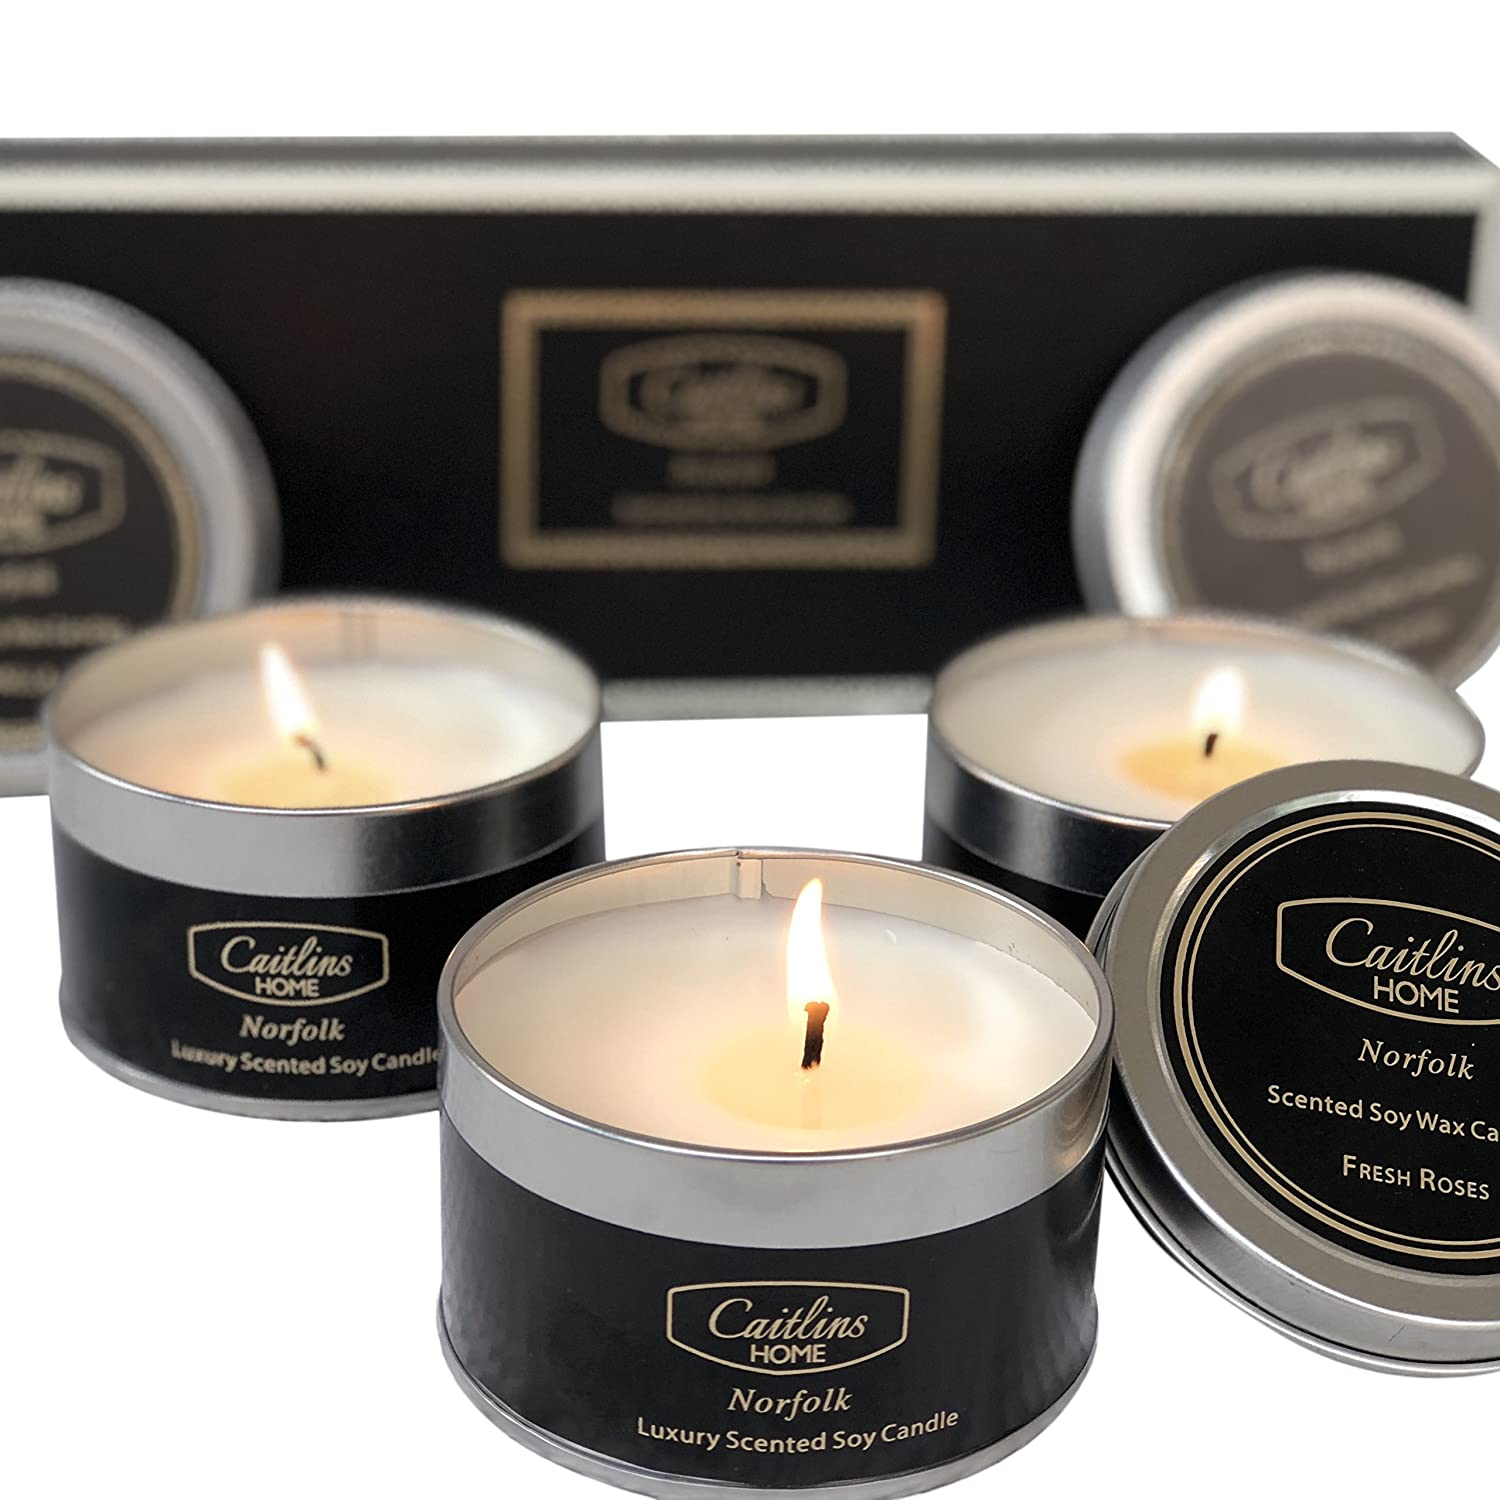 Caitlins Home Scented Candles Aromatherapy Soy Wax Candle Gift Set Vanilla, White Lavender, Eucalyptus Scents B0751VL8RP